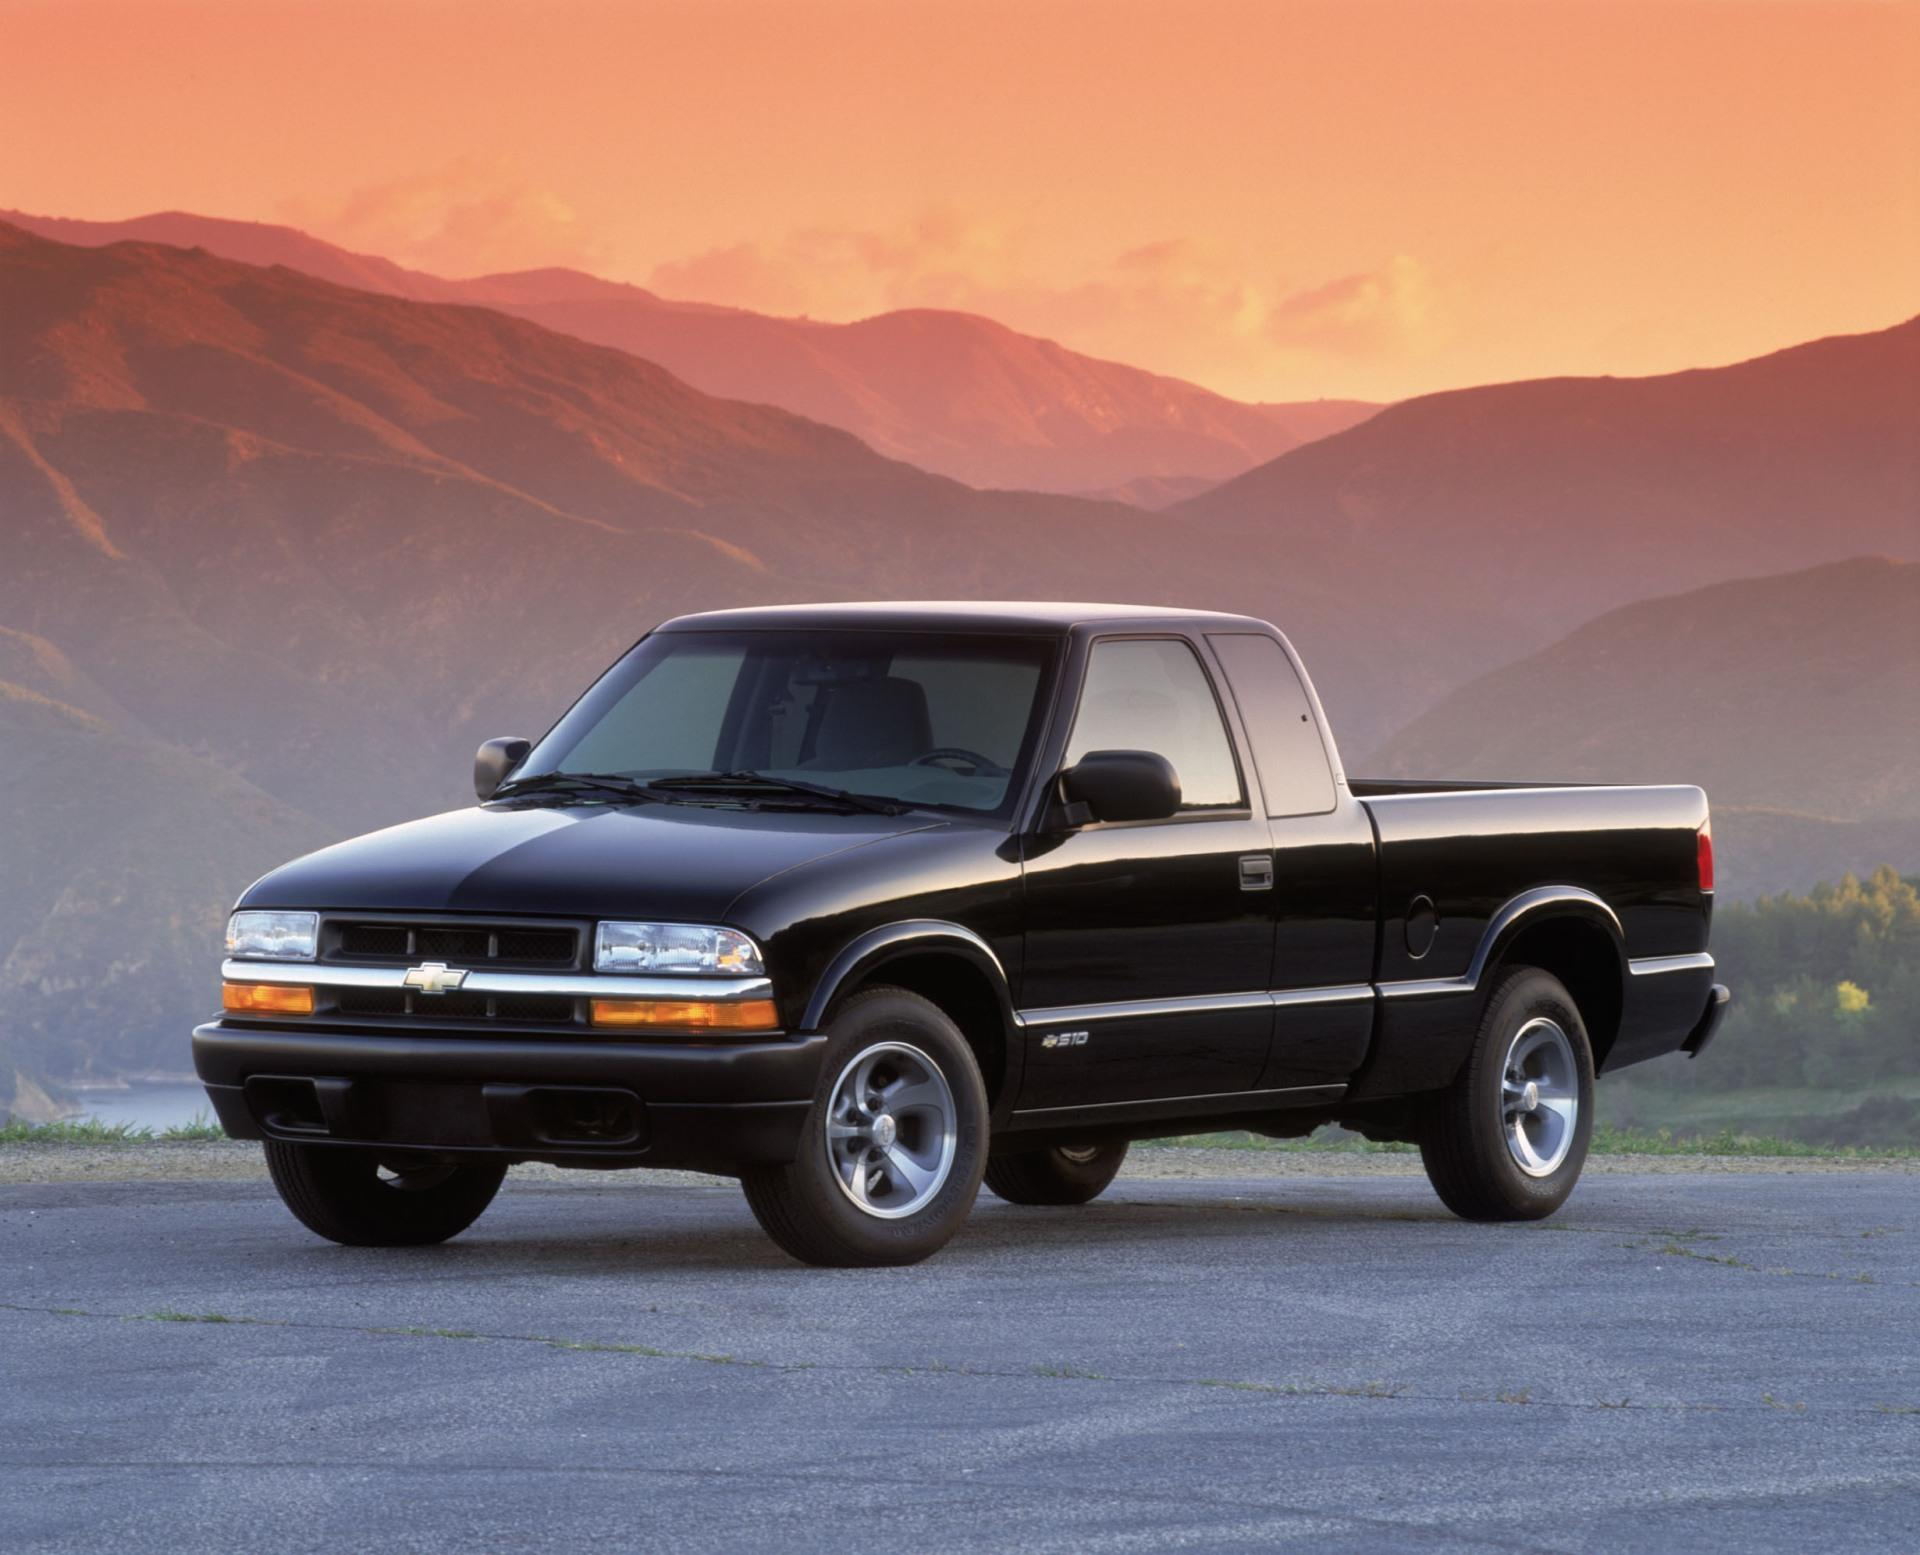 1999 chevrolet s 10 pictures history value research news conceptcarz com